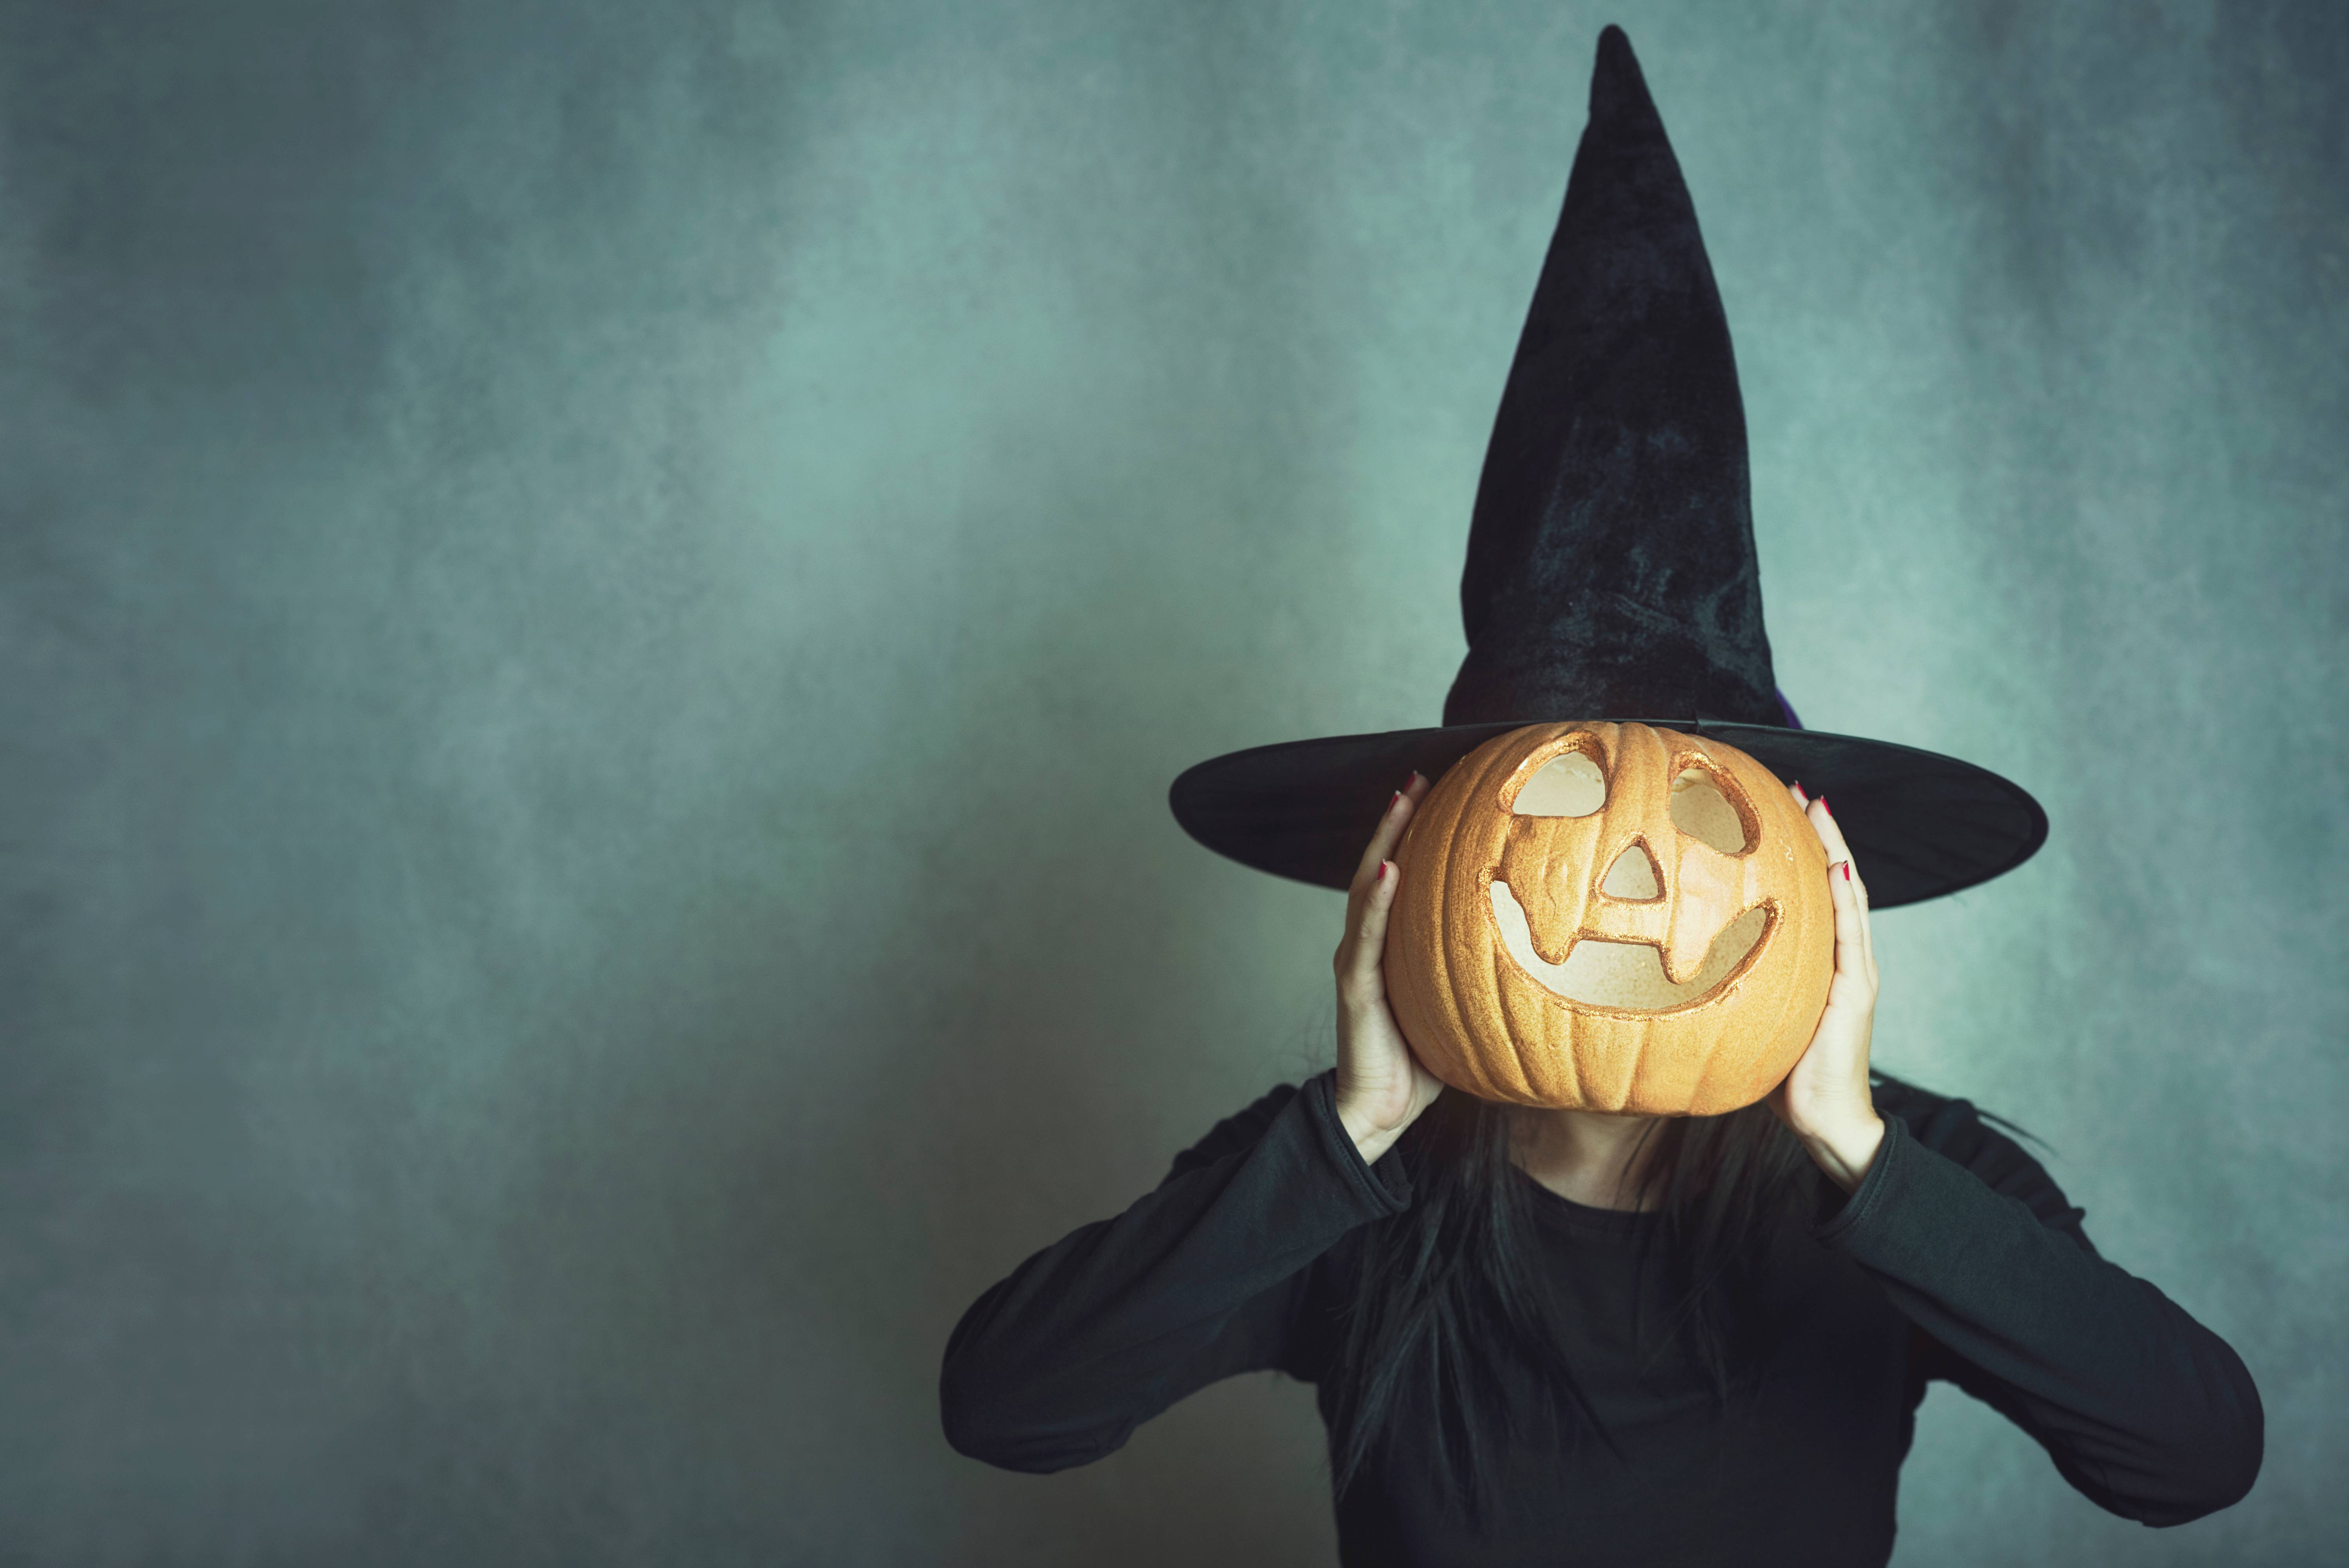 Woman Wearing Costume Covering Face With Jack O Lantern Against Wall During Halloween